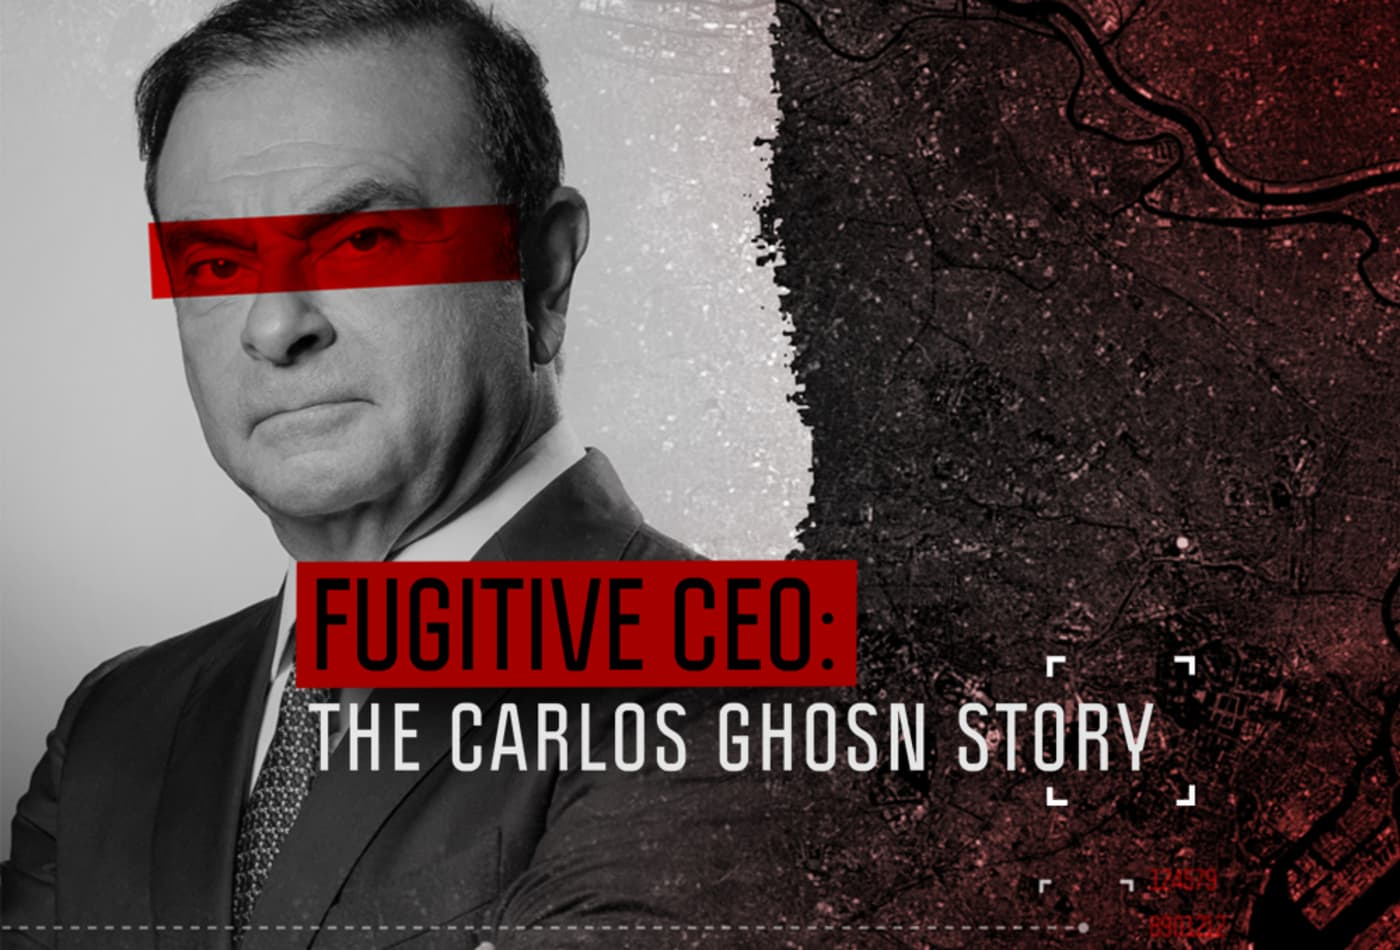 Here's a preview of CNBC's documentary on Carlos Ghosn's escape from Japan